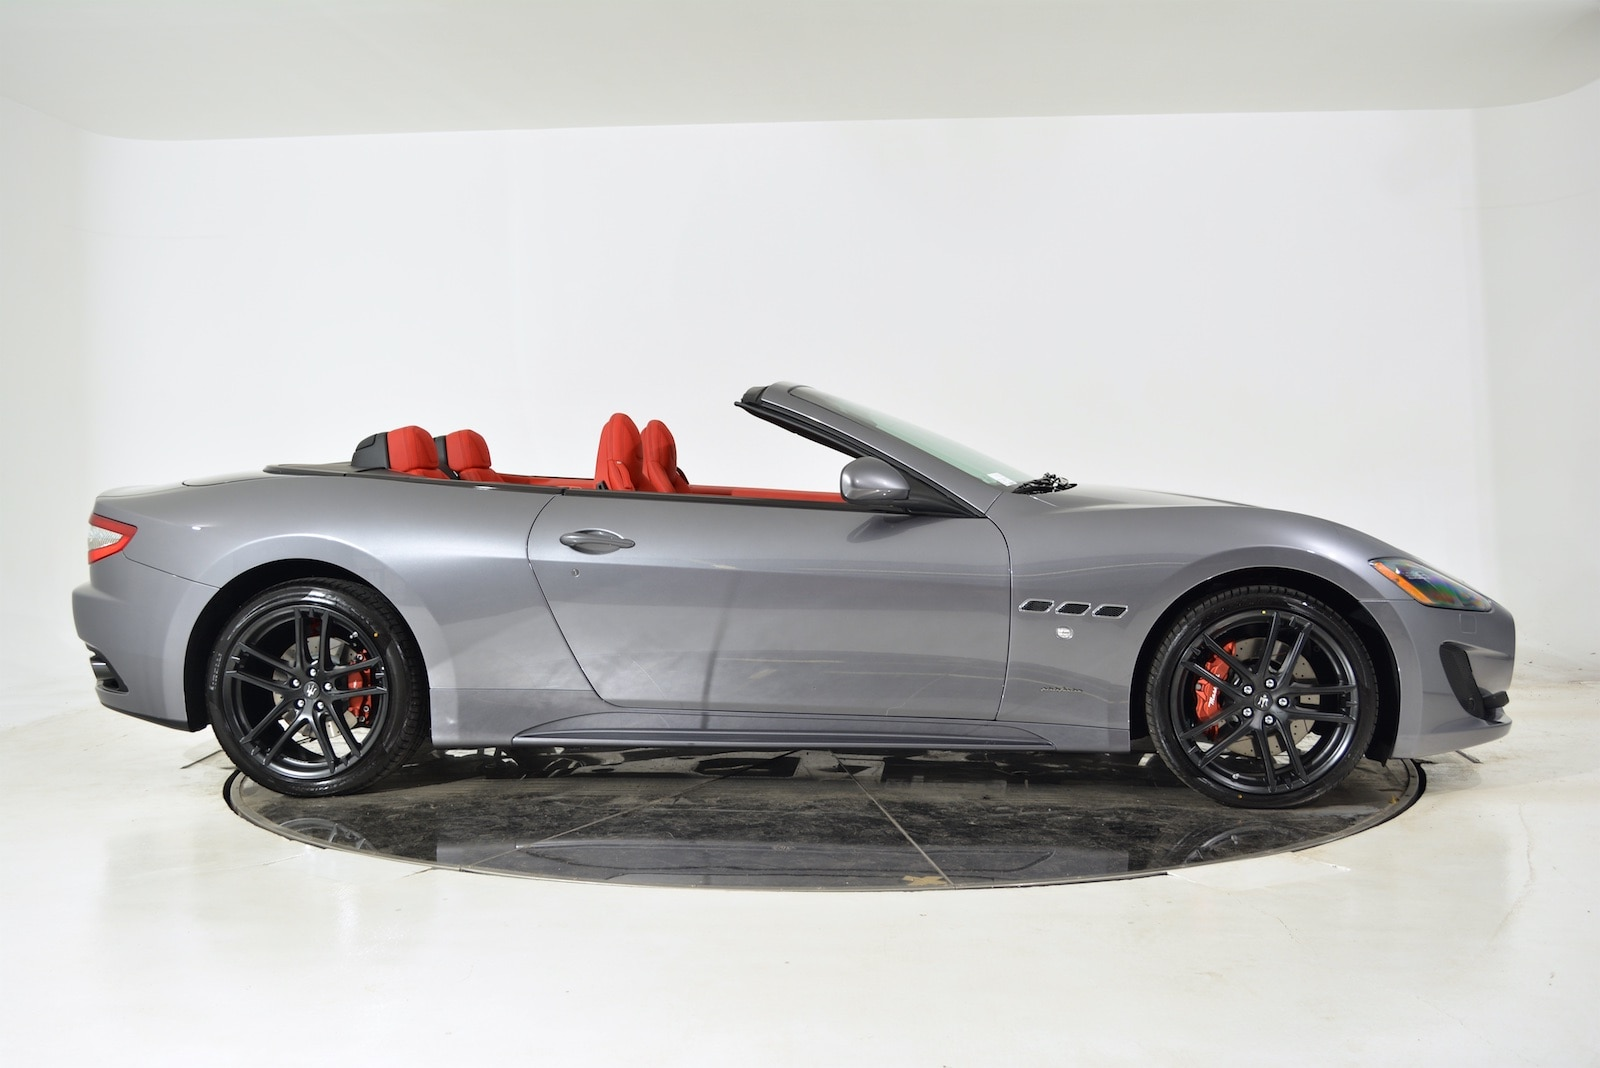 New 2017 MASERATI GT CONVERTIBLE SPORT For Sale | Fort ...